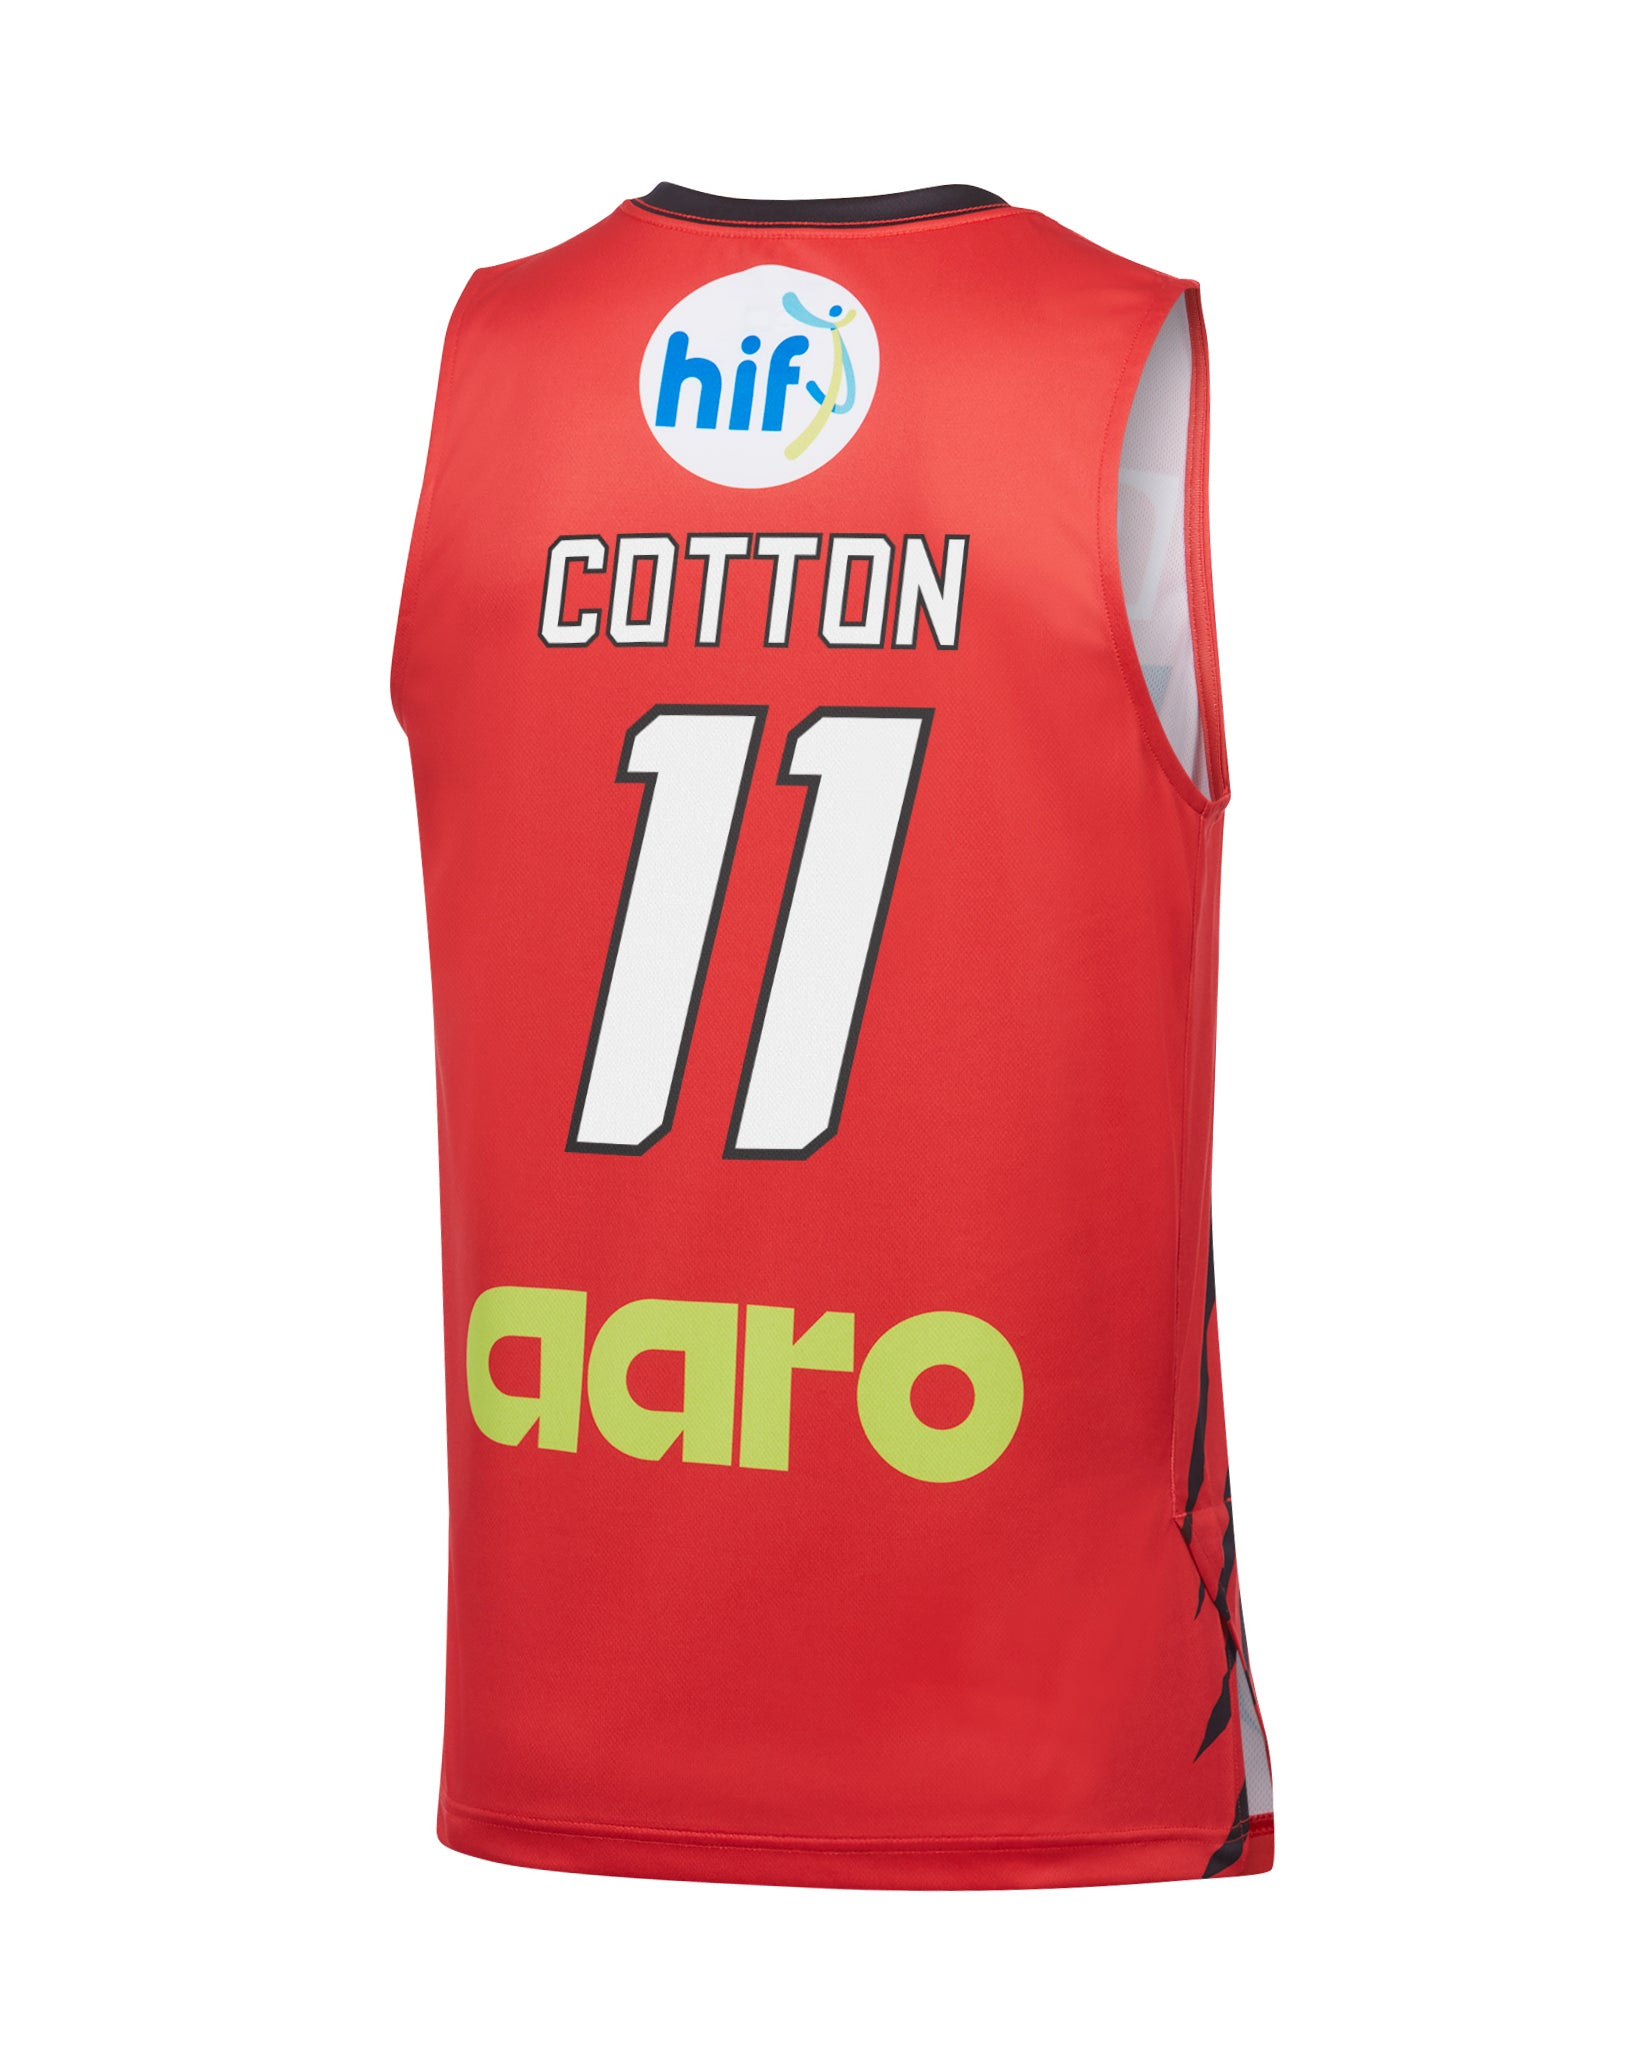 Perth Wildcats 19/20 Authentic Home Jersey - Bryce Cotton